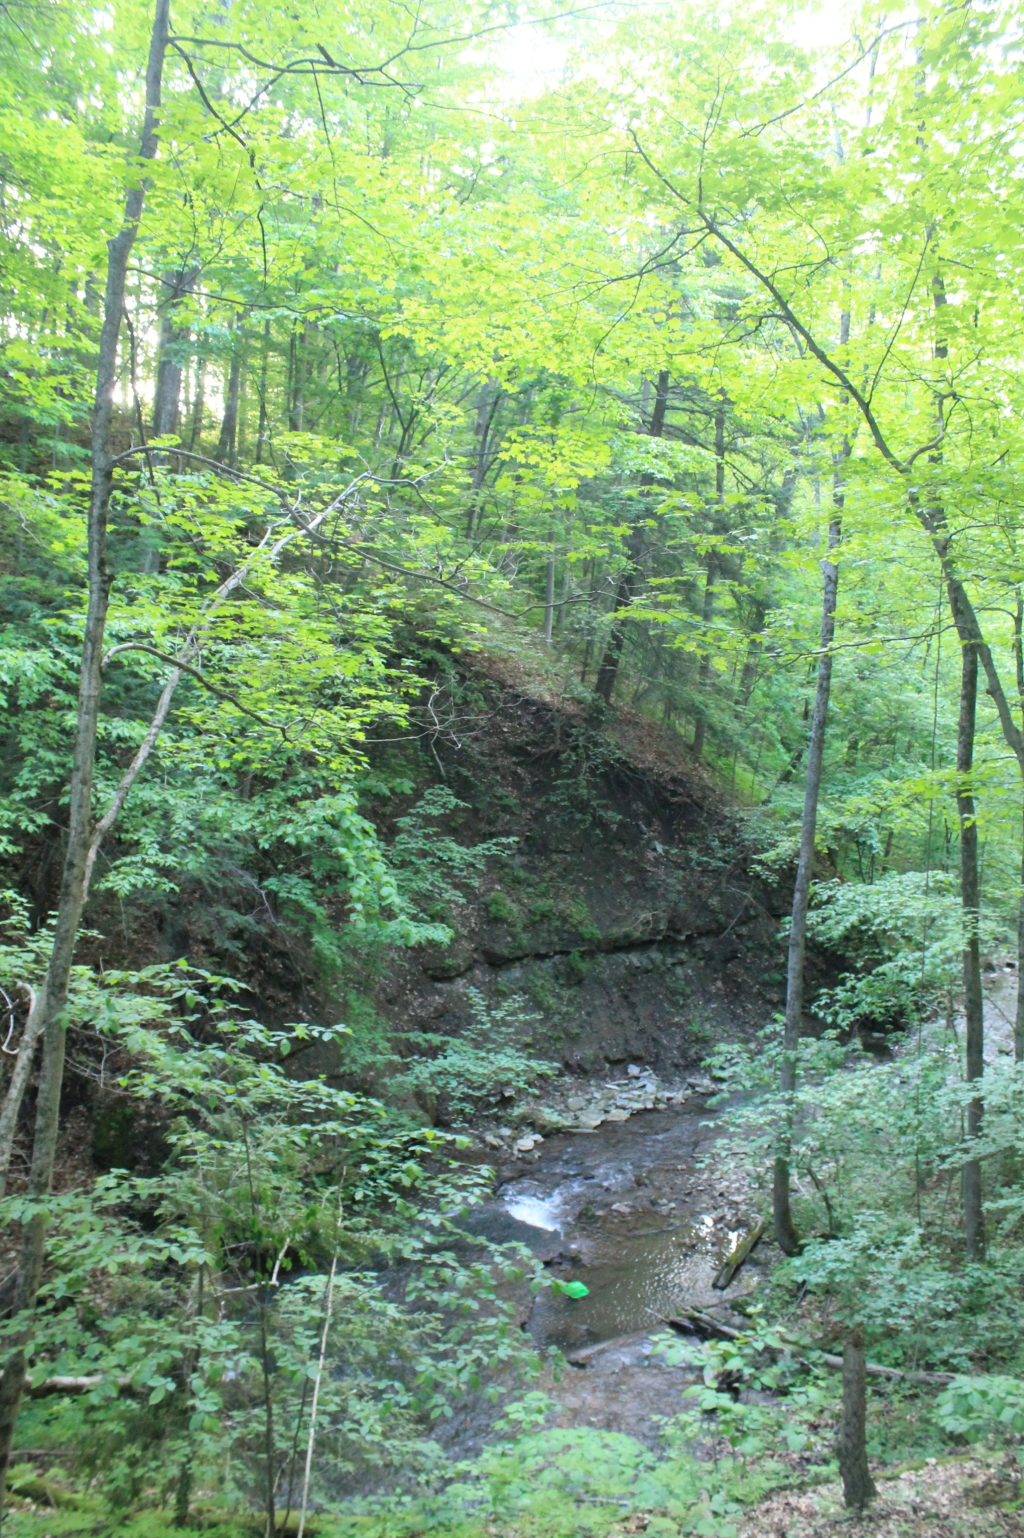 Photo: Canastota Creek Gorge from Railway